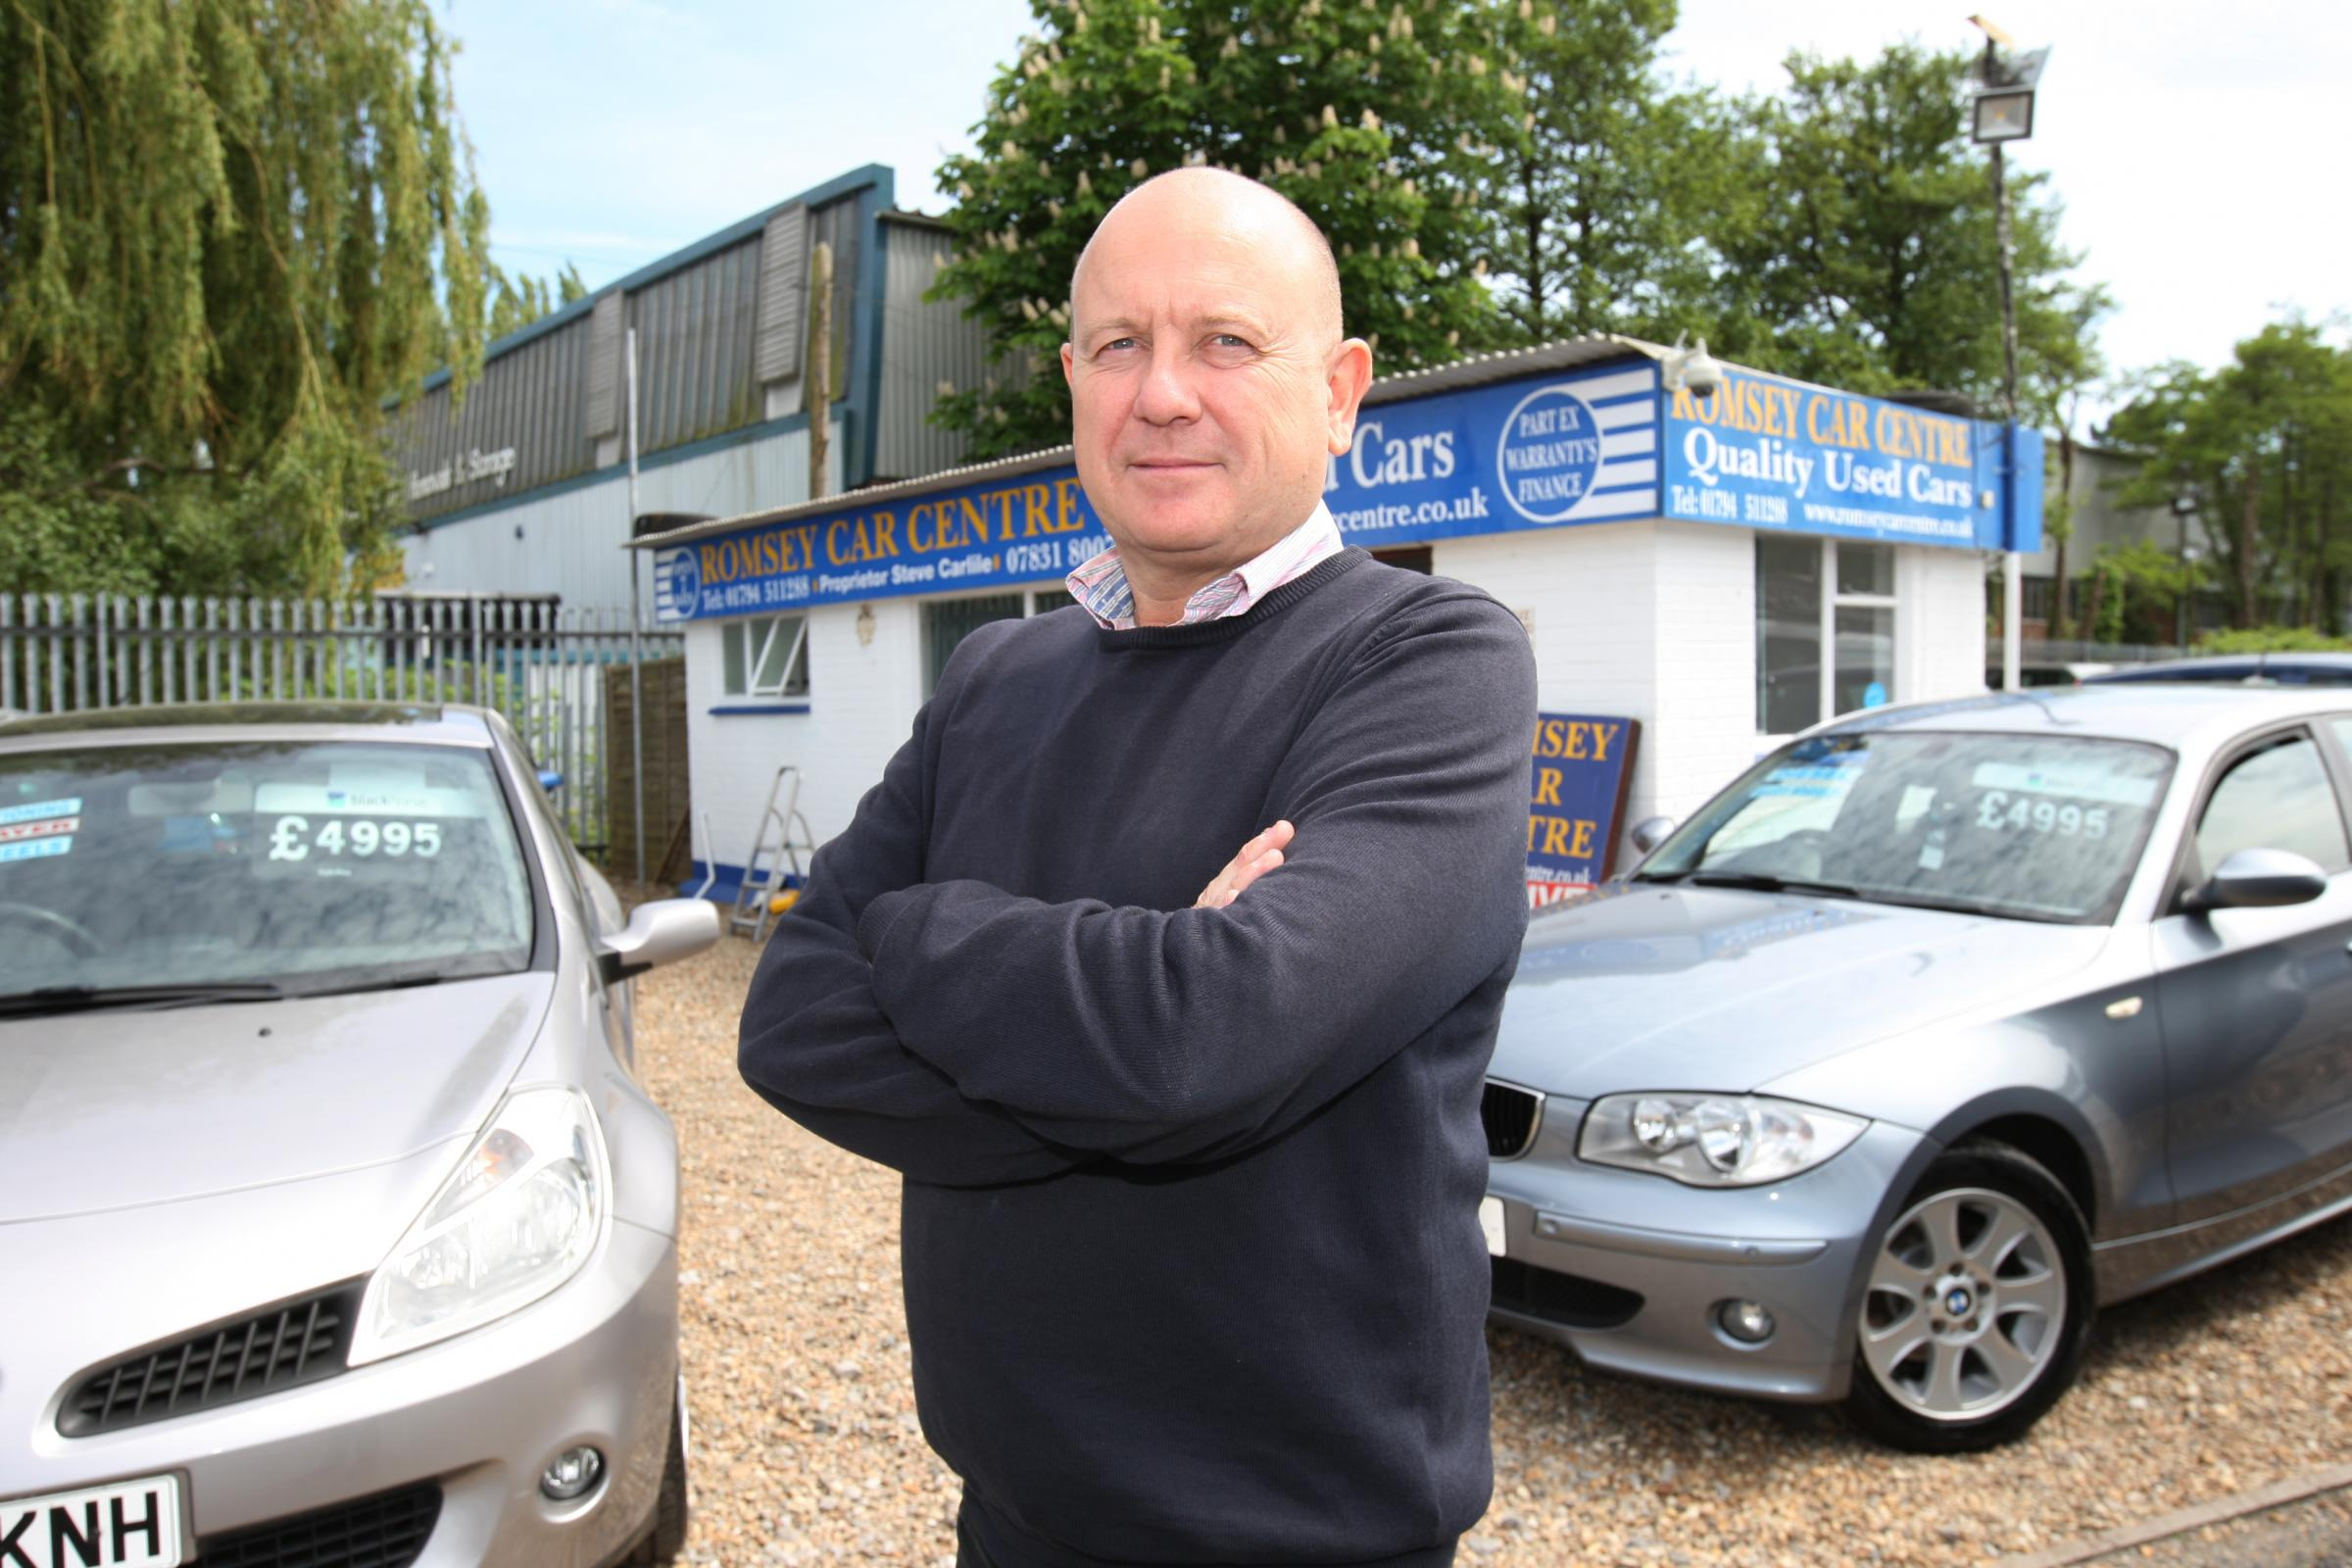 Romsey Car Centre >> Three Cars Worth 50 000 Were Stolen From Romsey Car Centre Leaving